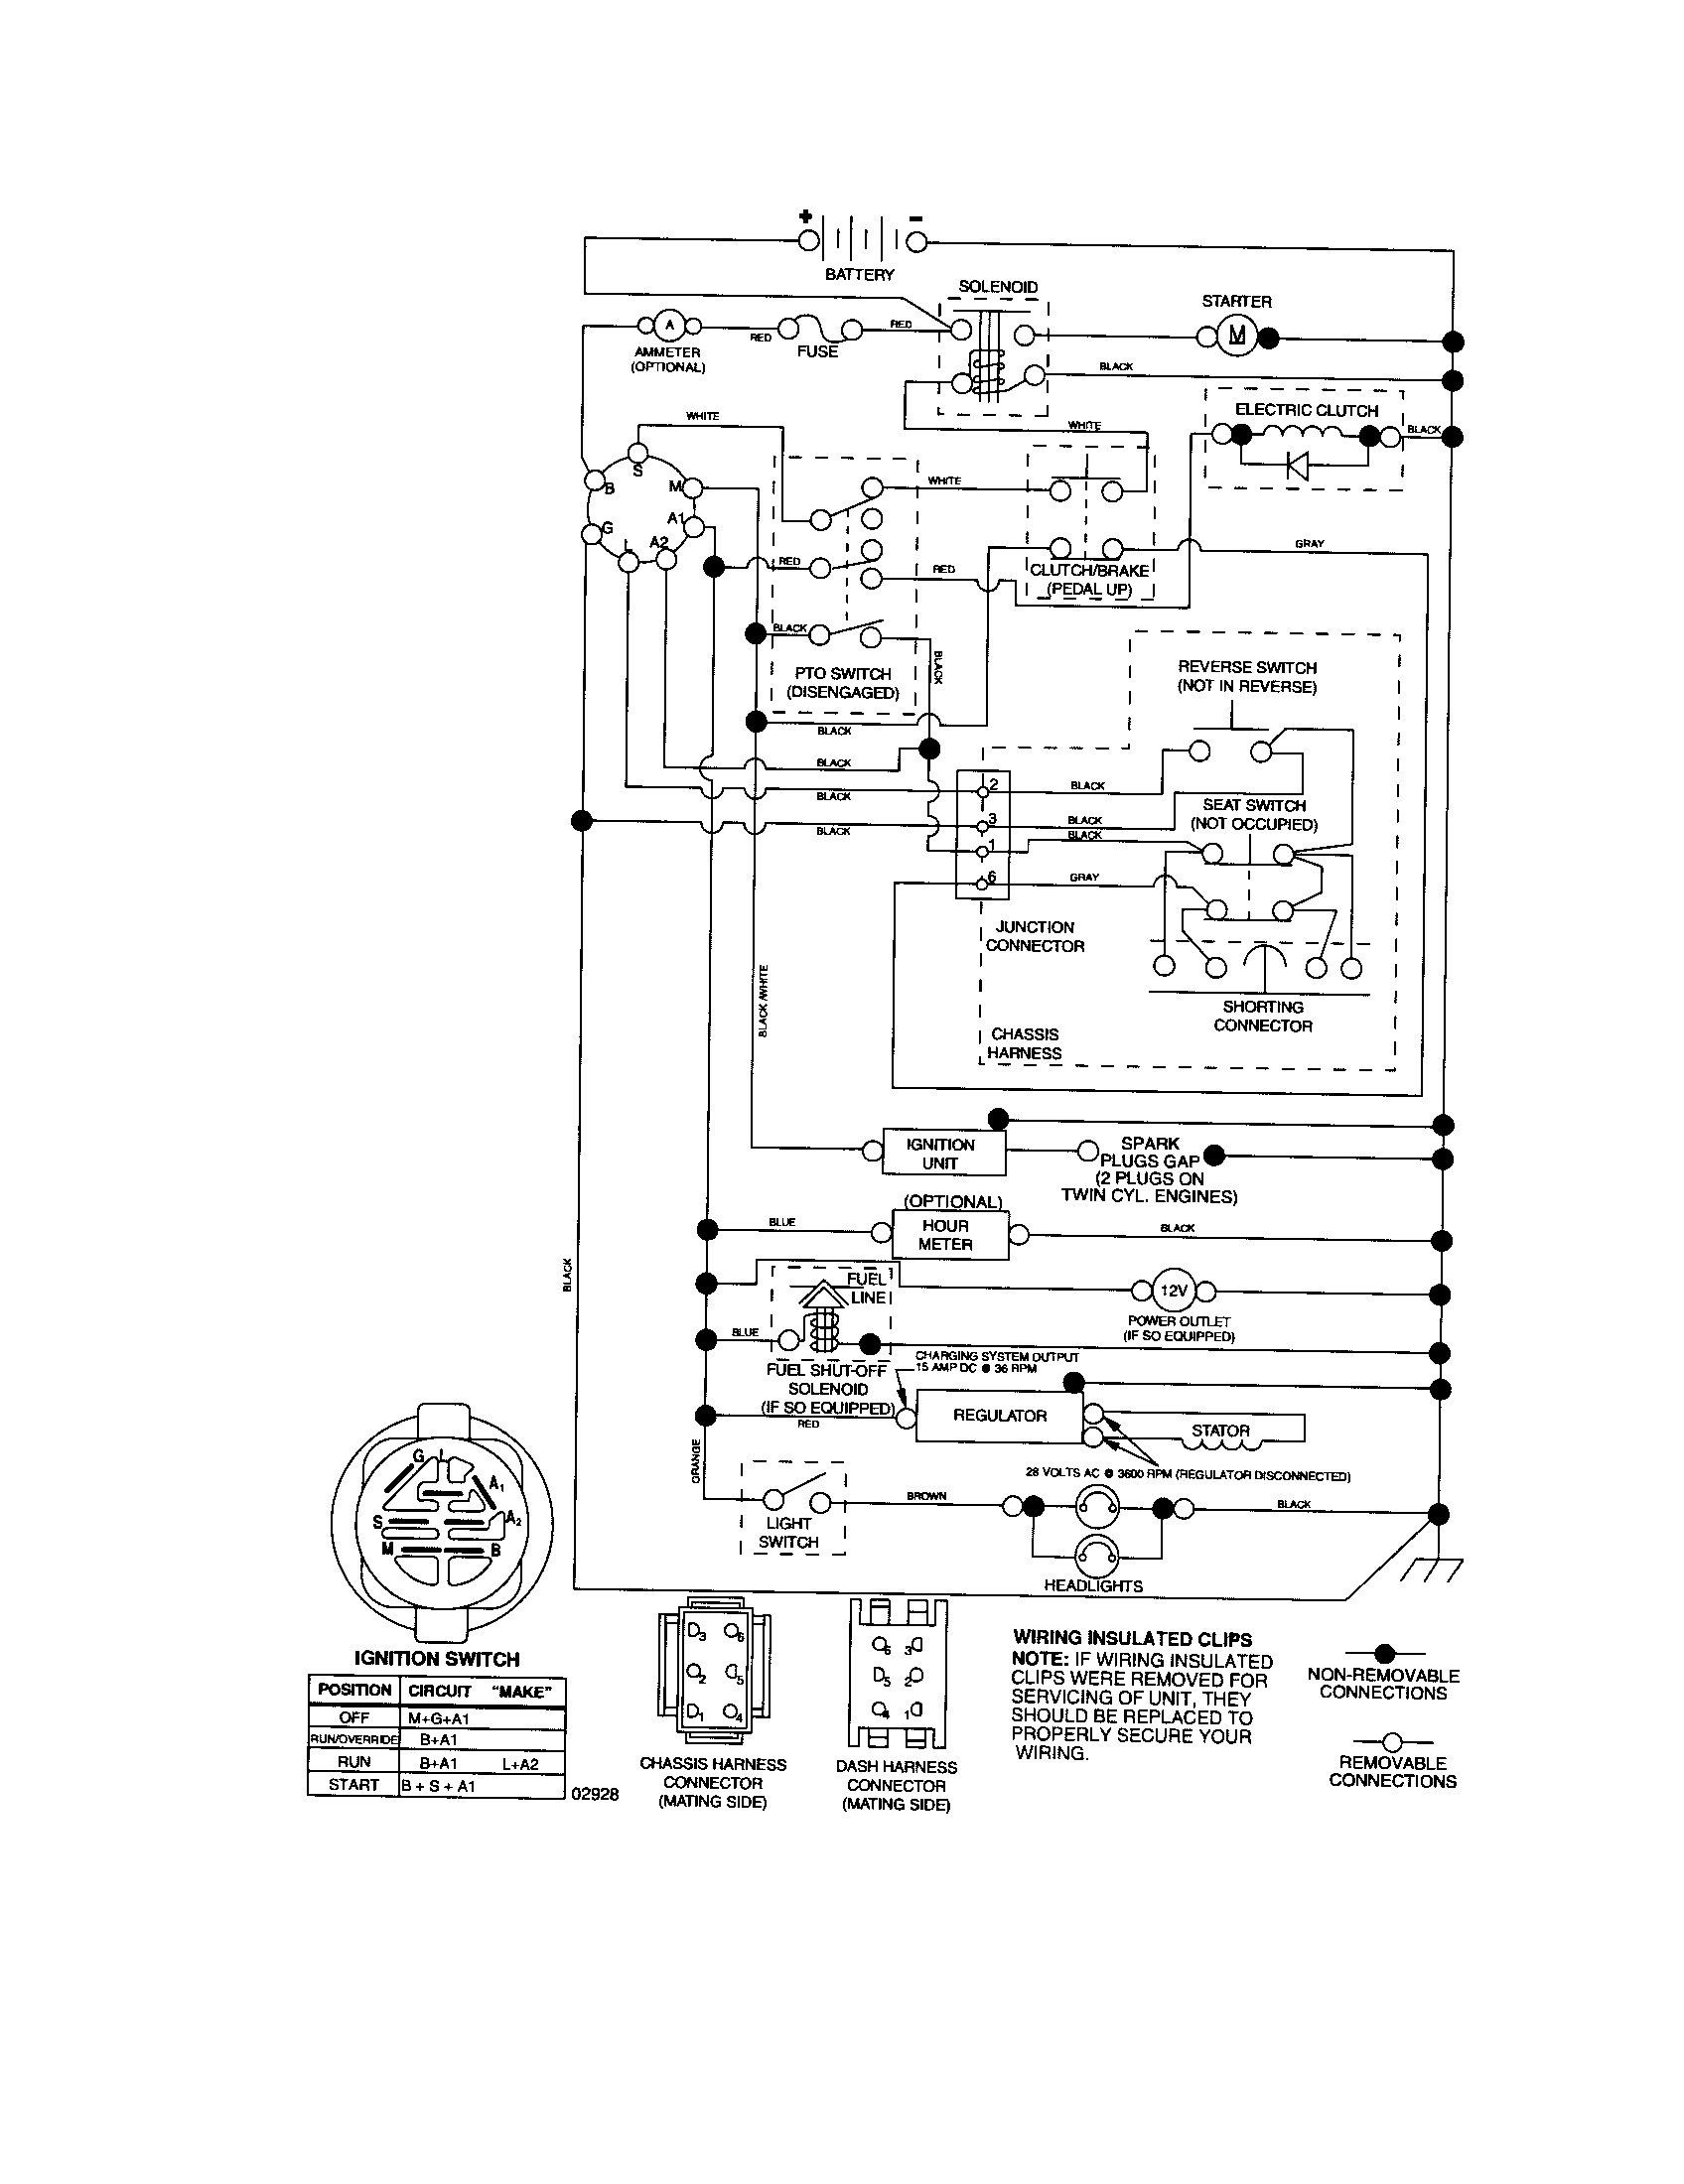 small resolution of craftsman lawn tractor model 917276904 schematic diagram tractor old ford tractor clutch diagram printable wiring diagram schematic